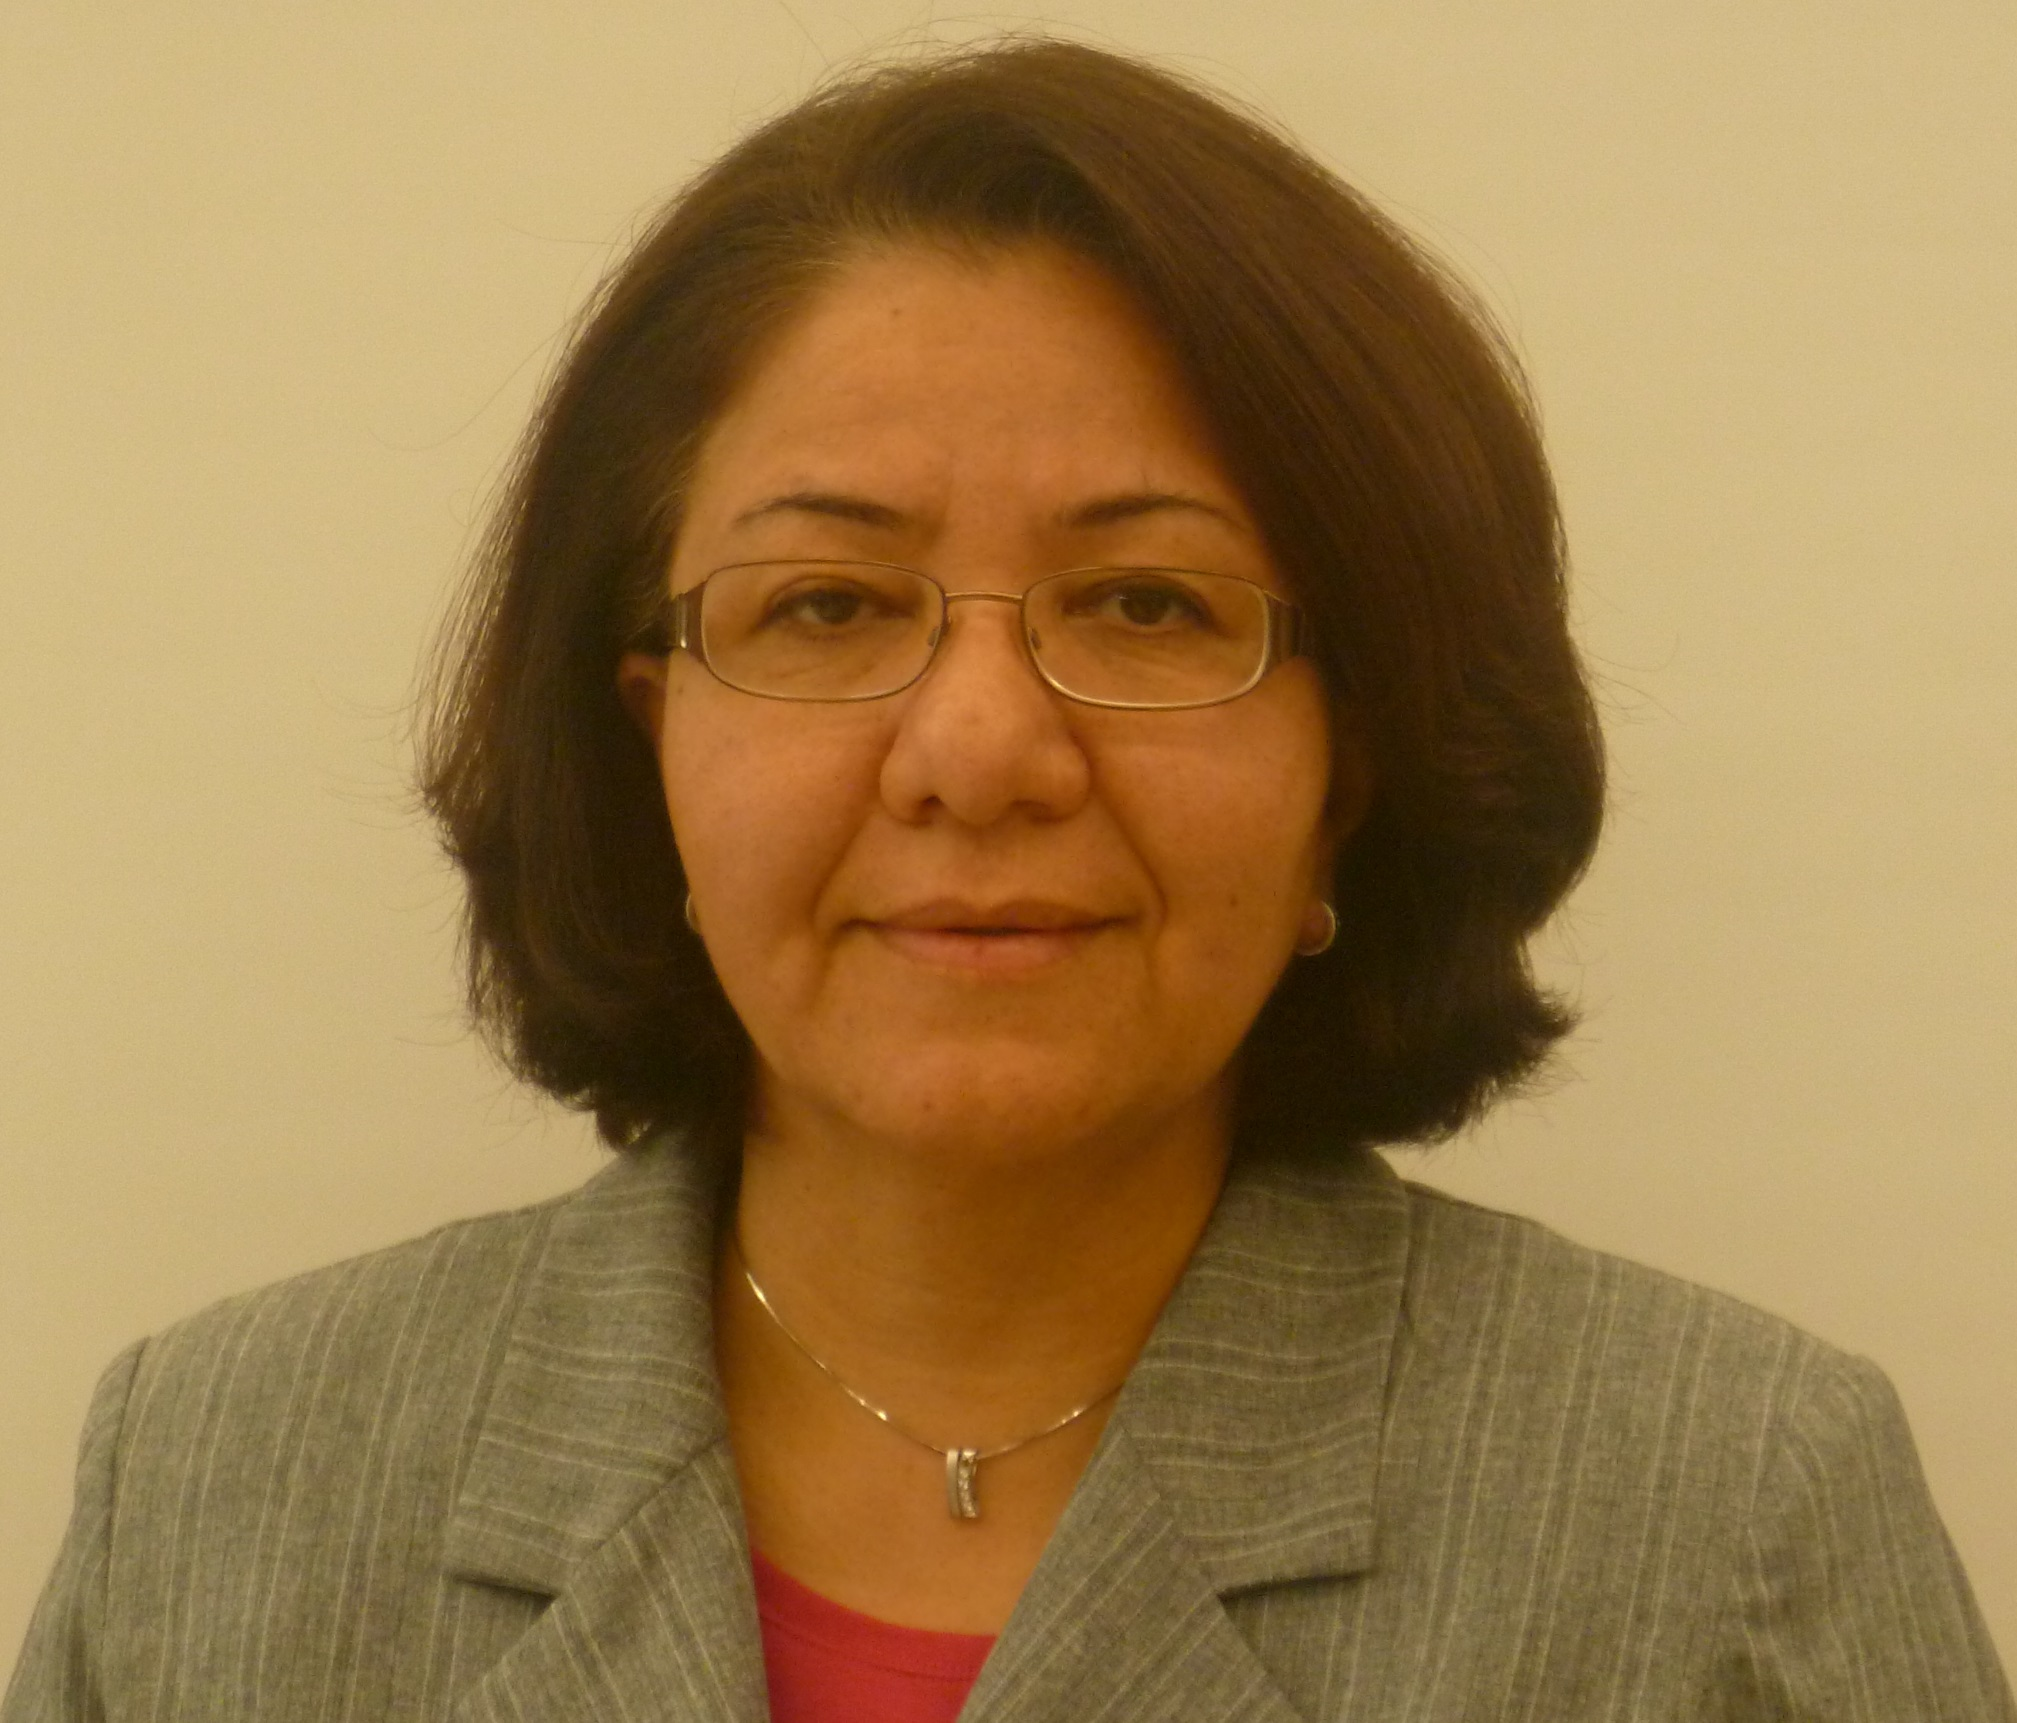 photo of Giti Bayhaghi, MHS, MLS(ASCP)CM